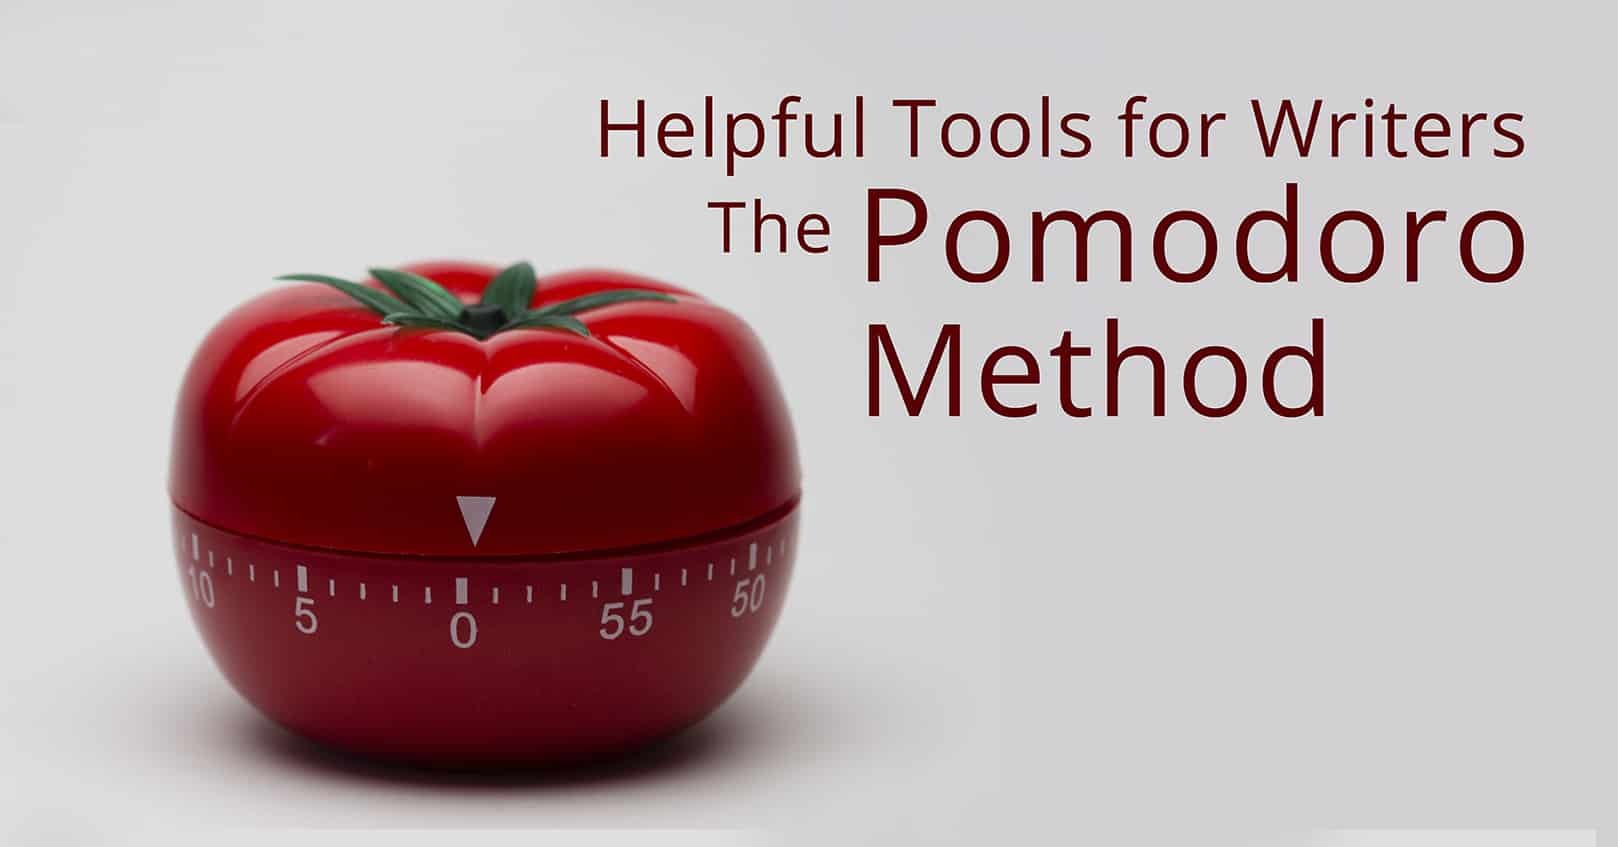 Tools for writers: the Pomodoro Method